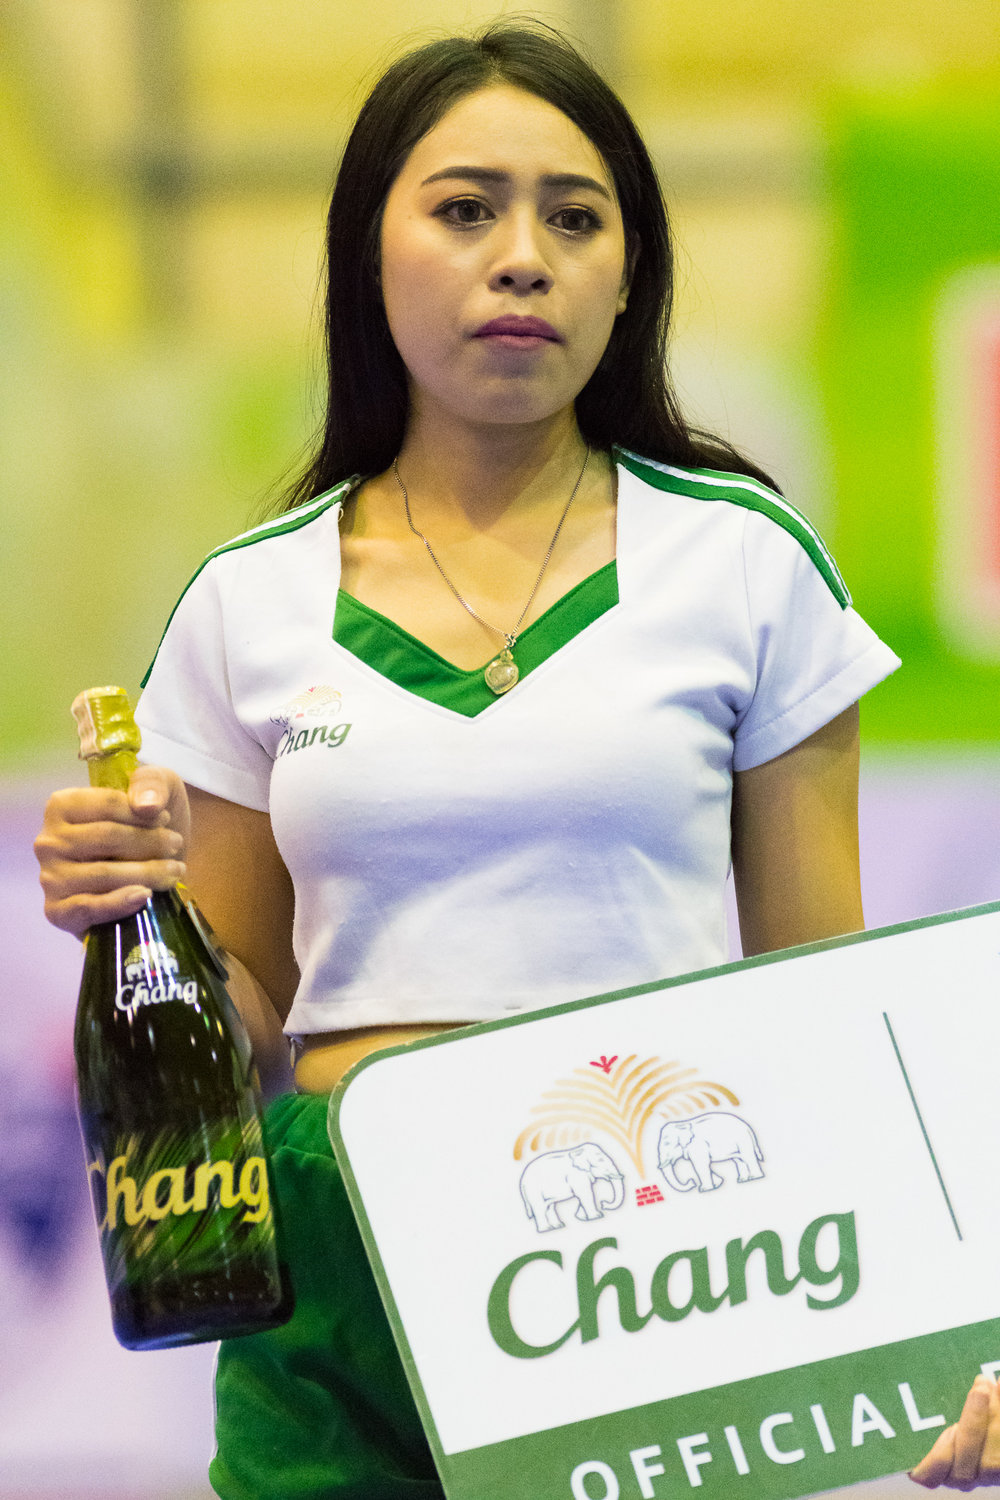 SURAT THANI, THAILAND - JUNE 11: Halftime giveaway by sponsored by Chang Beer at Surat Thani vs Samut Sakhon Futsal on June 11, 2017 at Surat Thani Sports Complex, Surat Thani, Thailand. (Photo by: Naratip Srisupab/Thailand Photo SEALs Sports Photography)